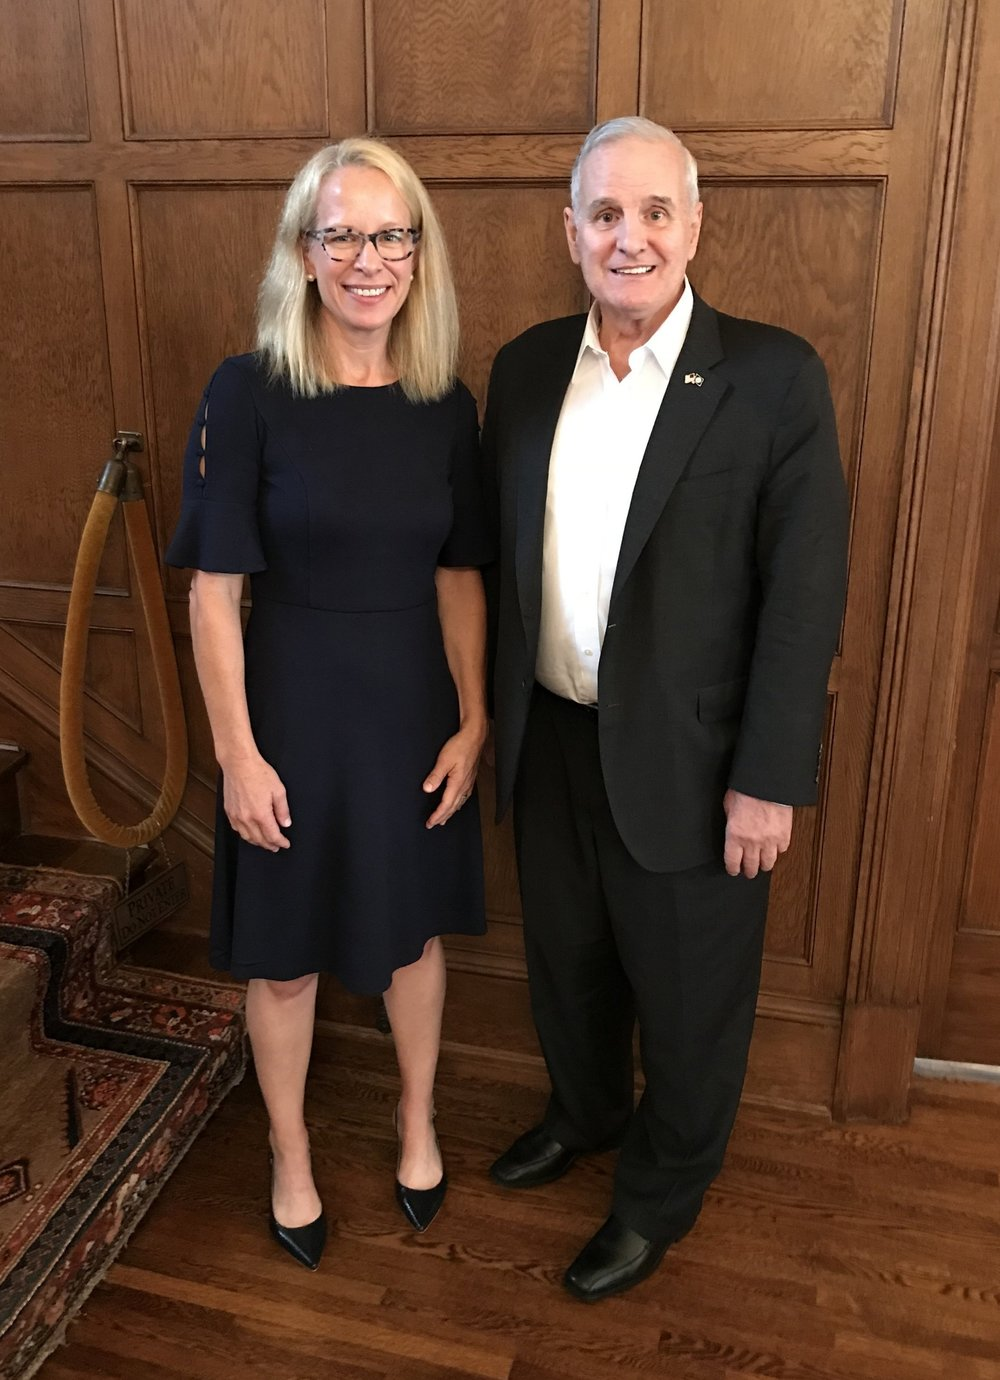 Kelly Morrison with Minnesota Governor Mark Dayton